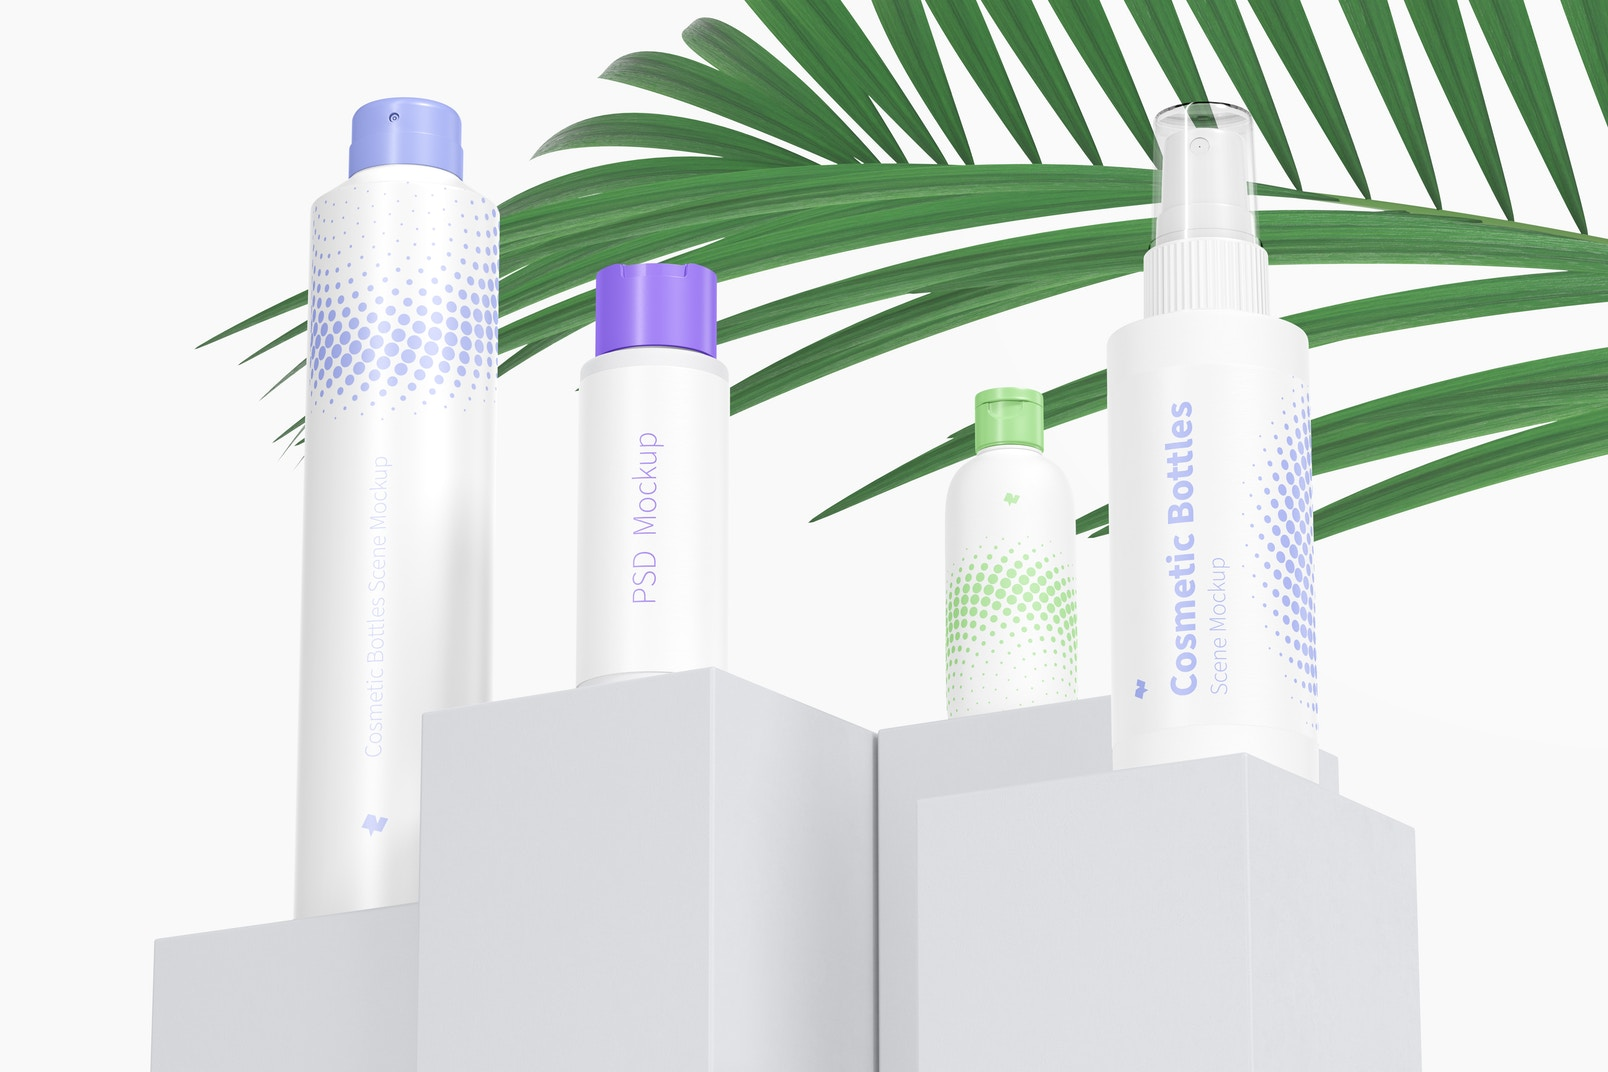 Cosmetic Bottles Scene Mockup, Low Angle View